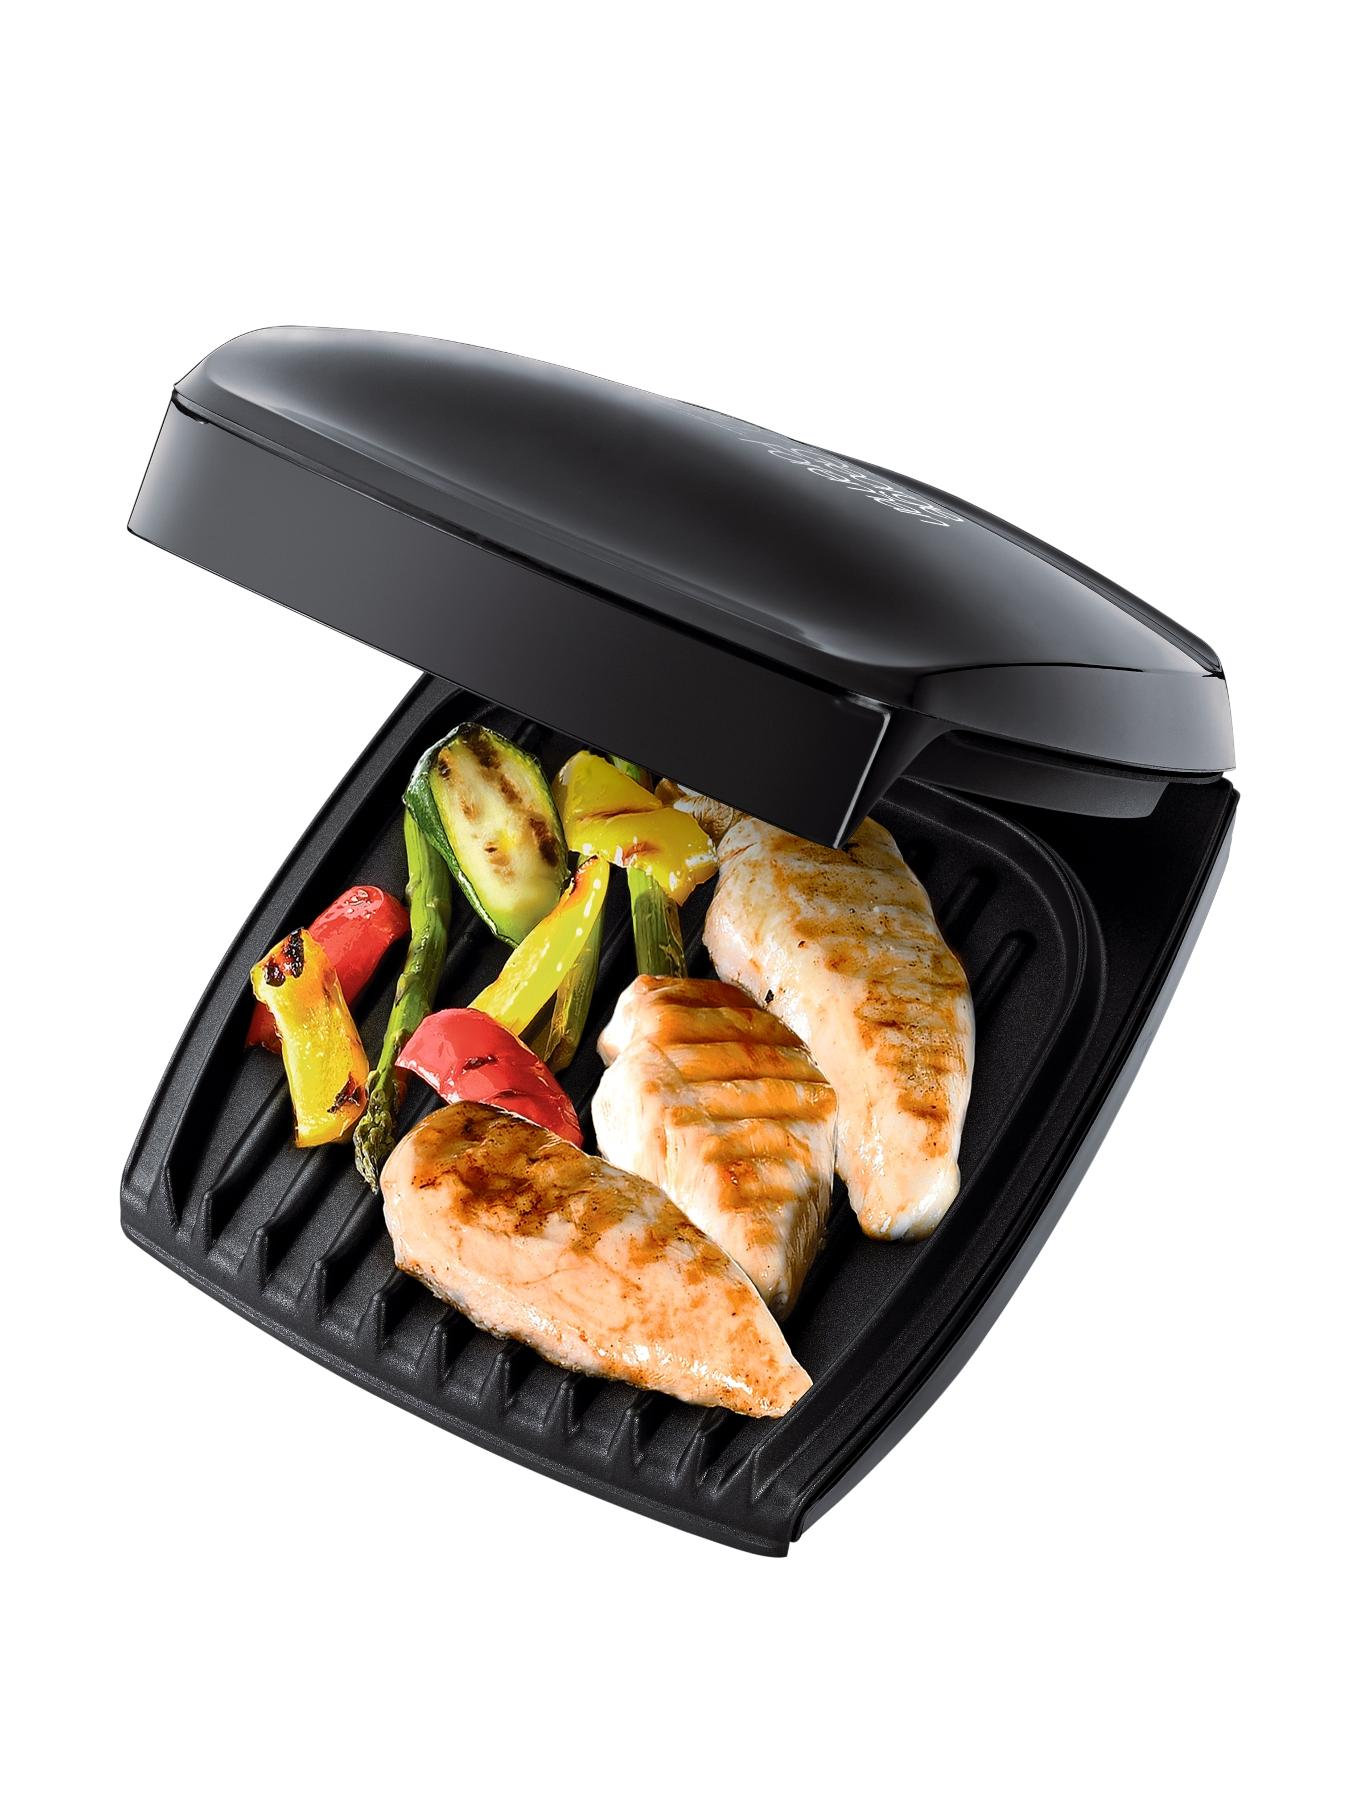 18471 Health Grill